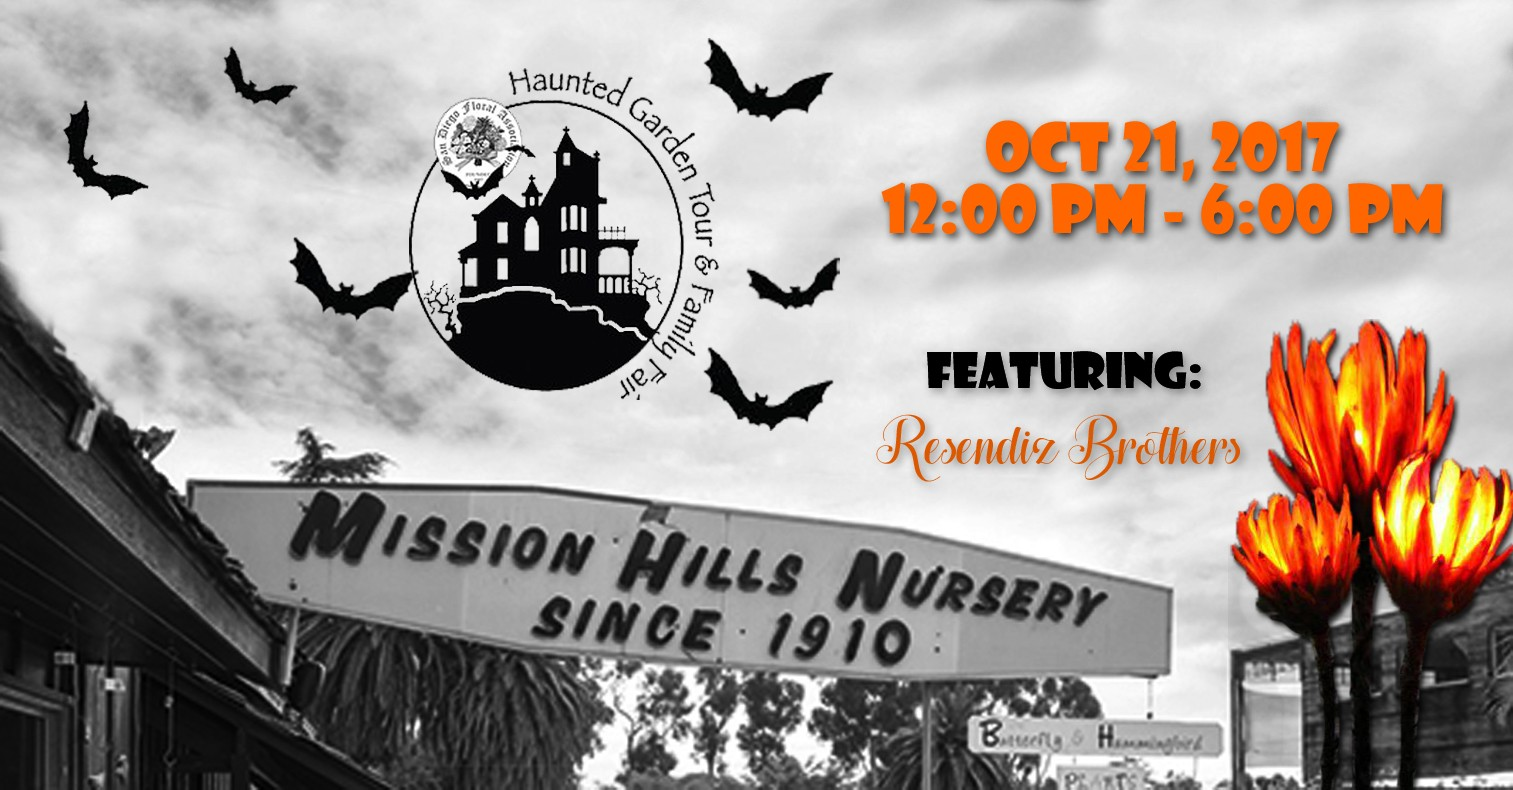 The San Go Fl Ociation Is Hosting A Haunted Garden Tour Of Historic Mission Hills Homes Brave Heart Can Experience Undead In